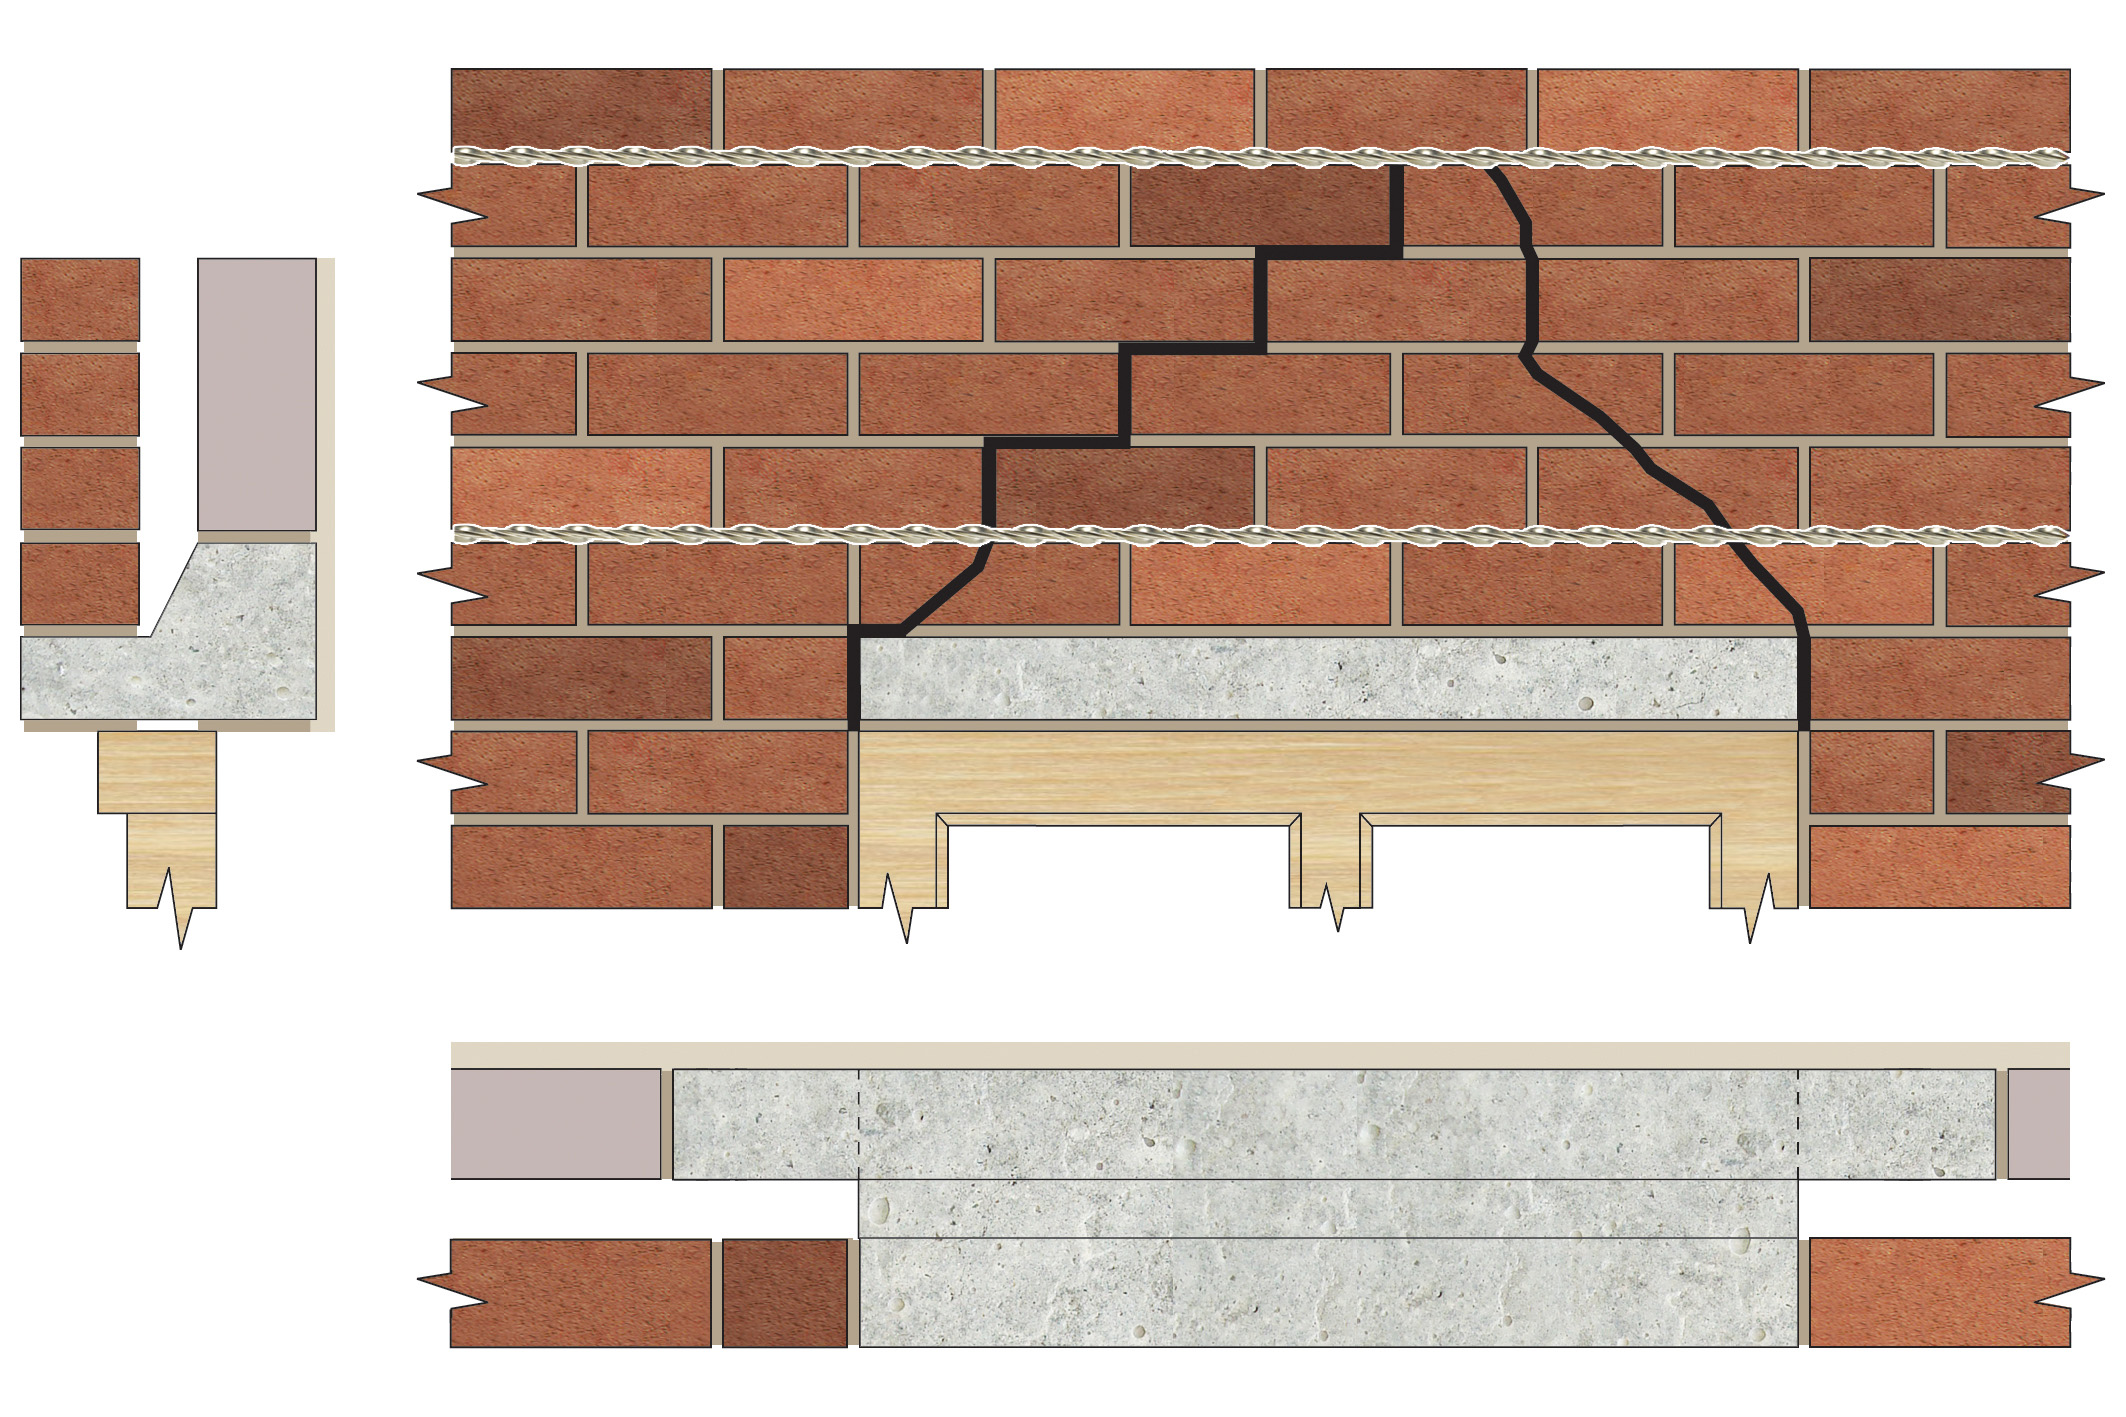 Applications - Lintel security for window replacement